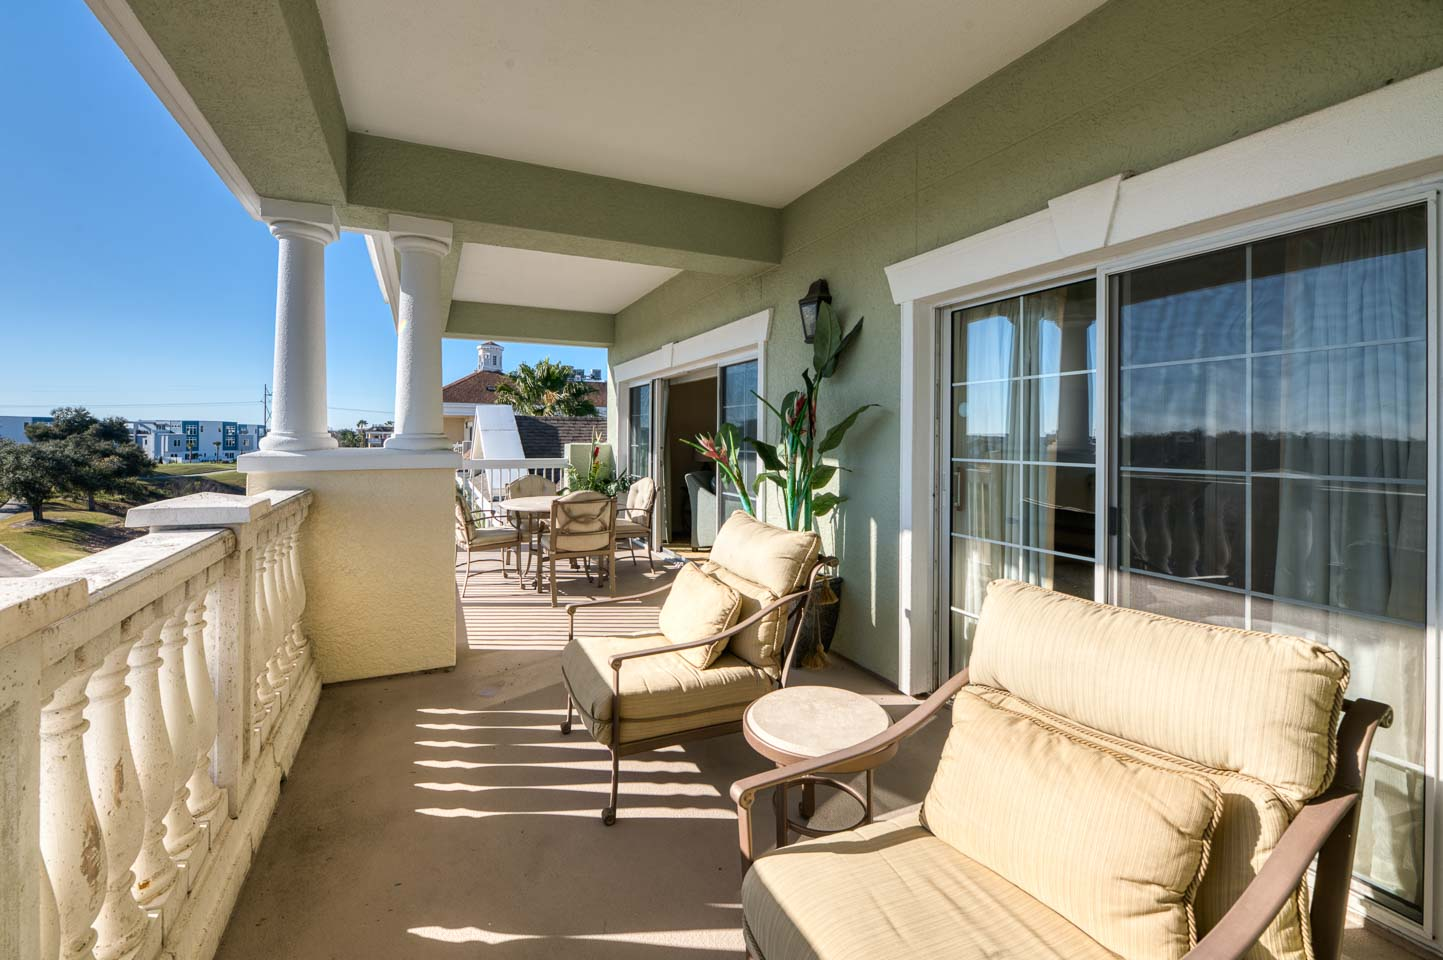 The Welcoming Golf Condo-195362